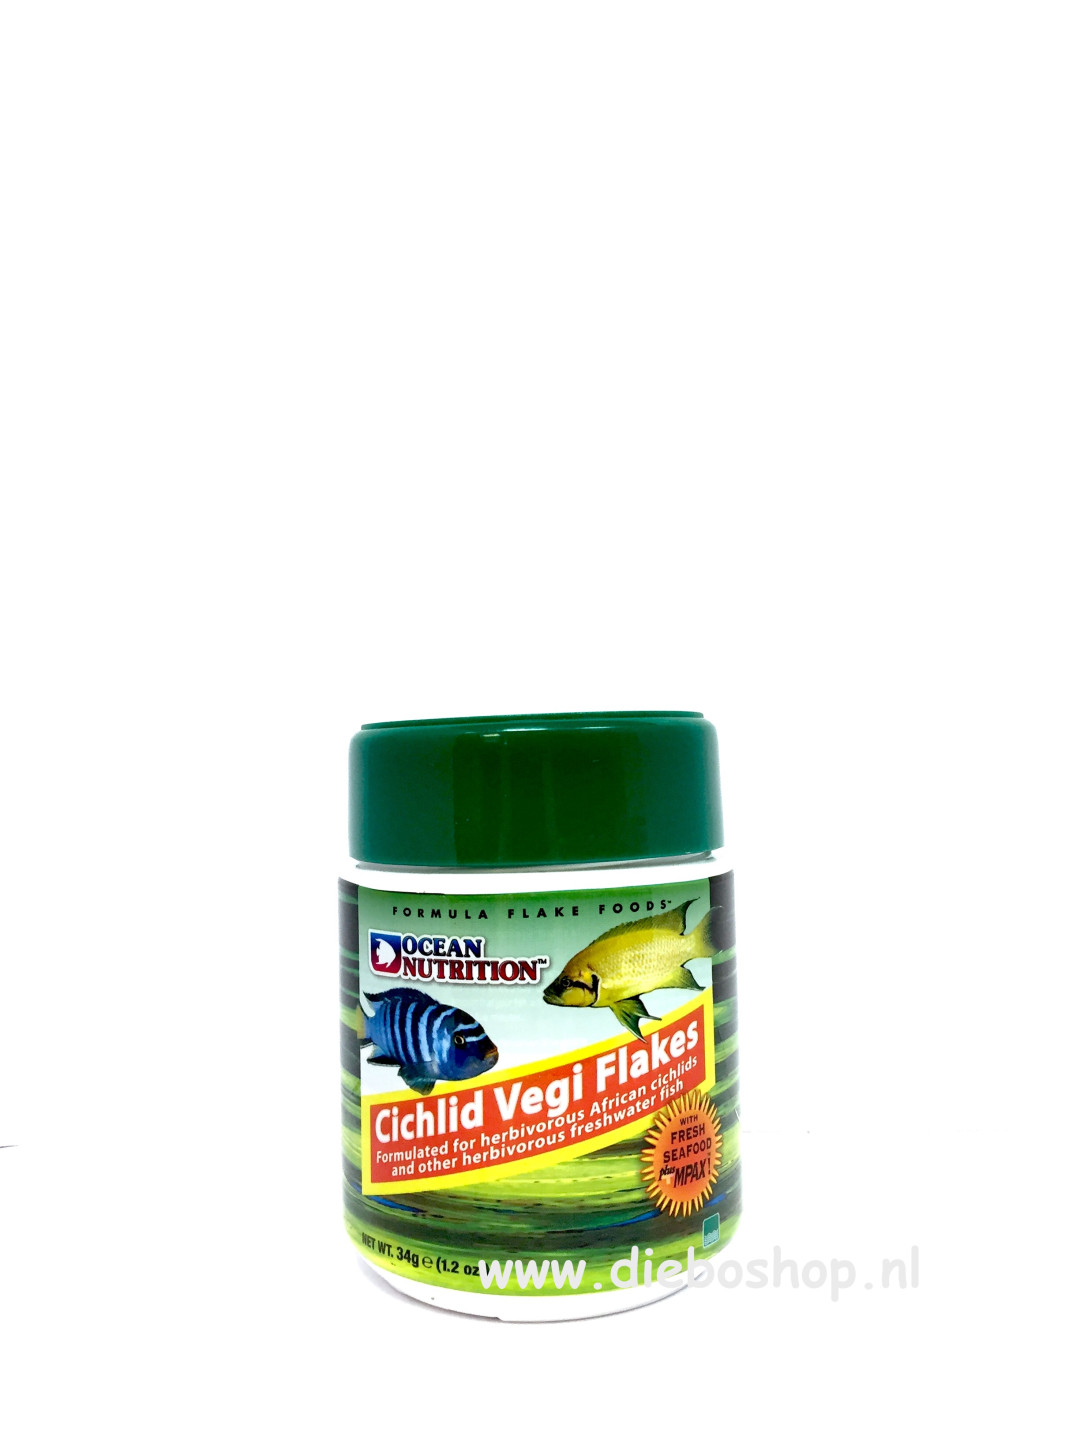 On Cichlid Vegi Flakes